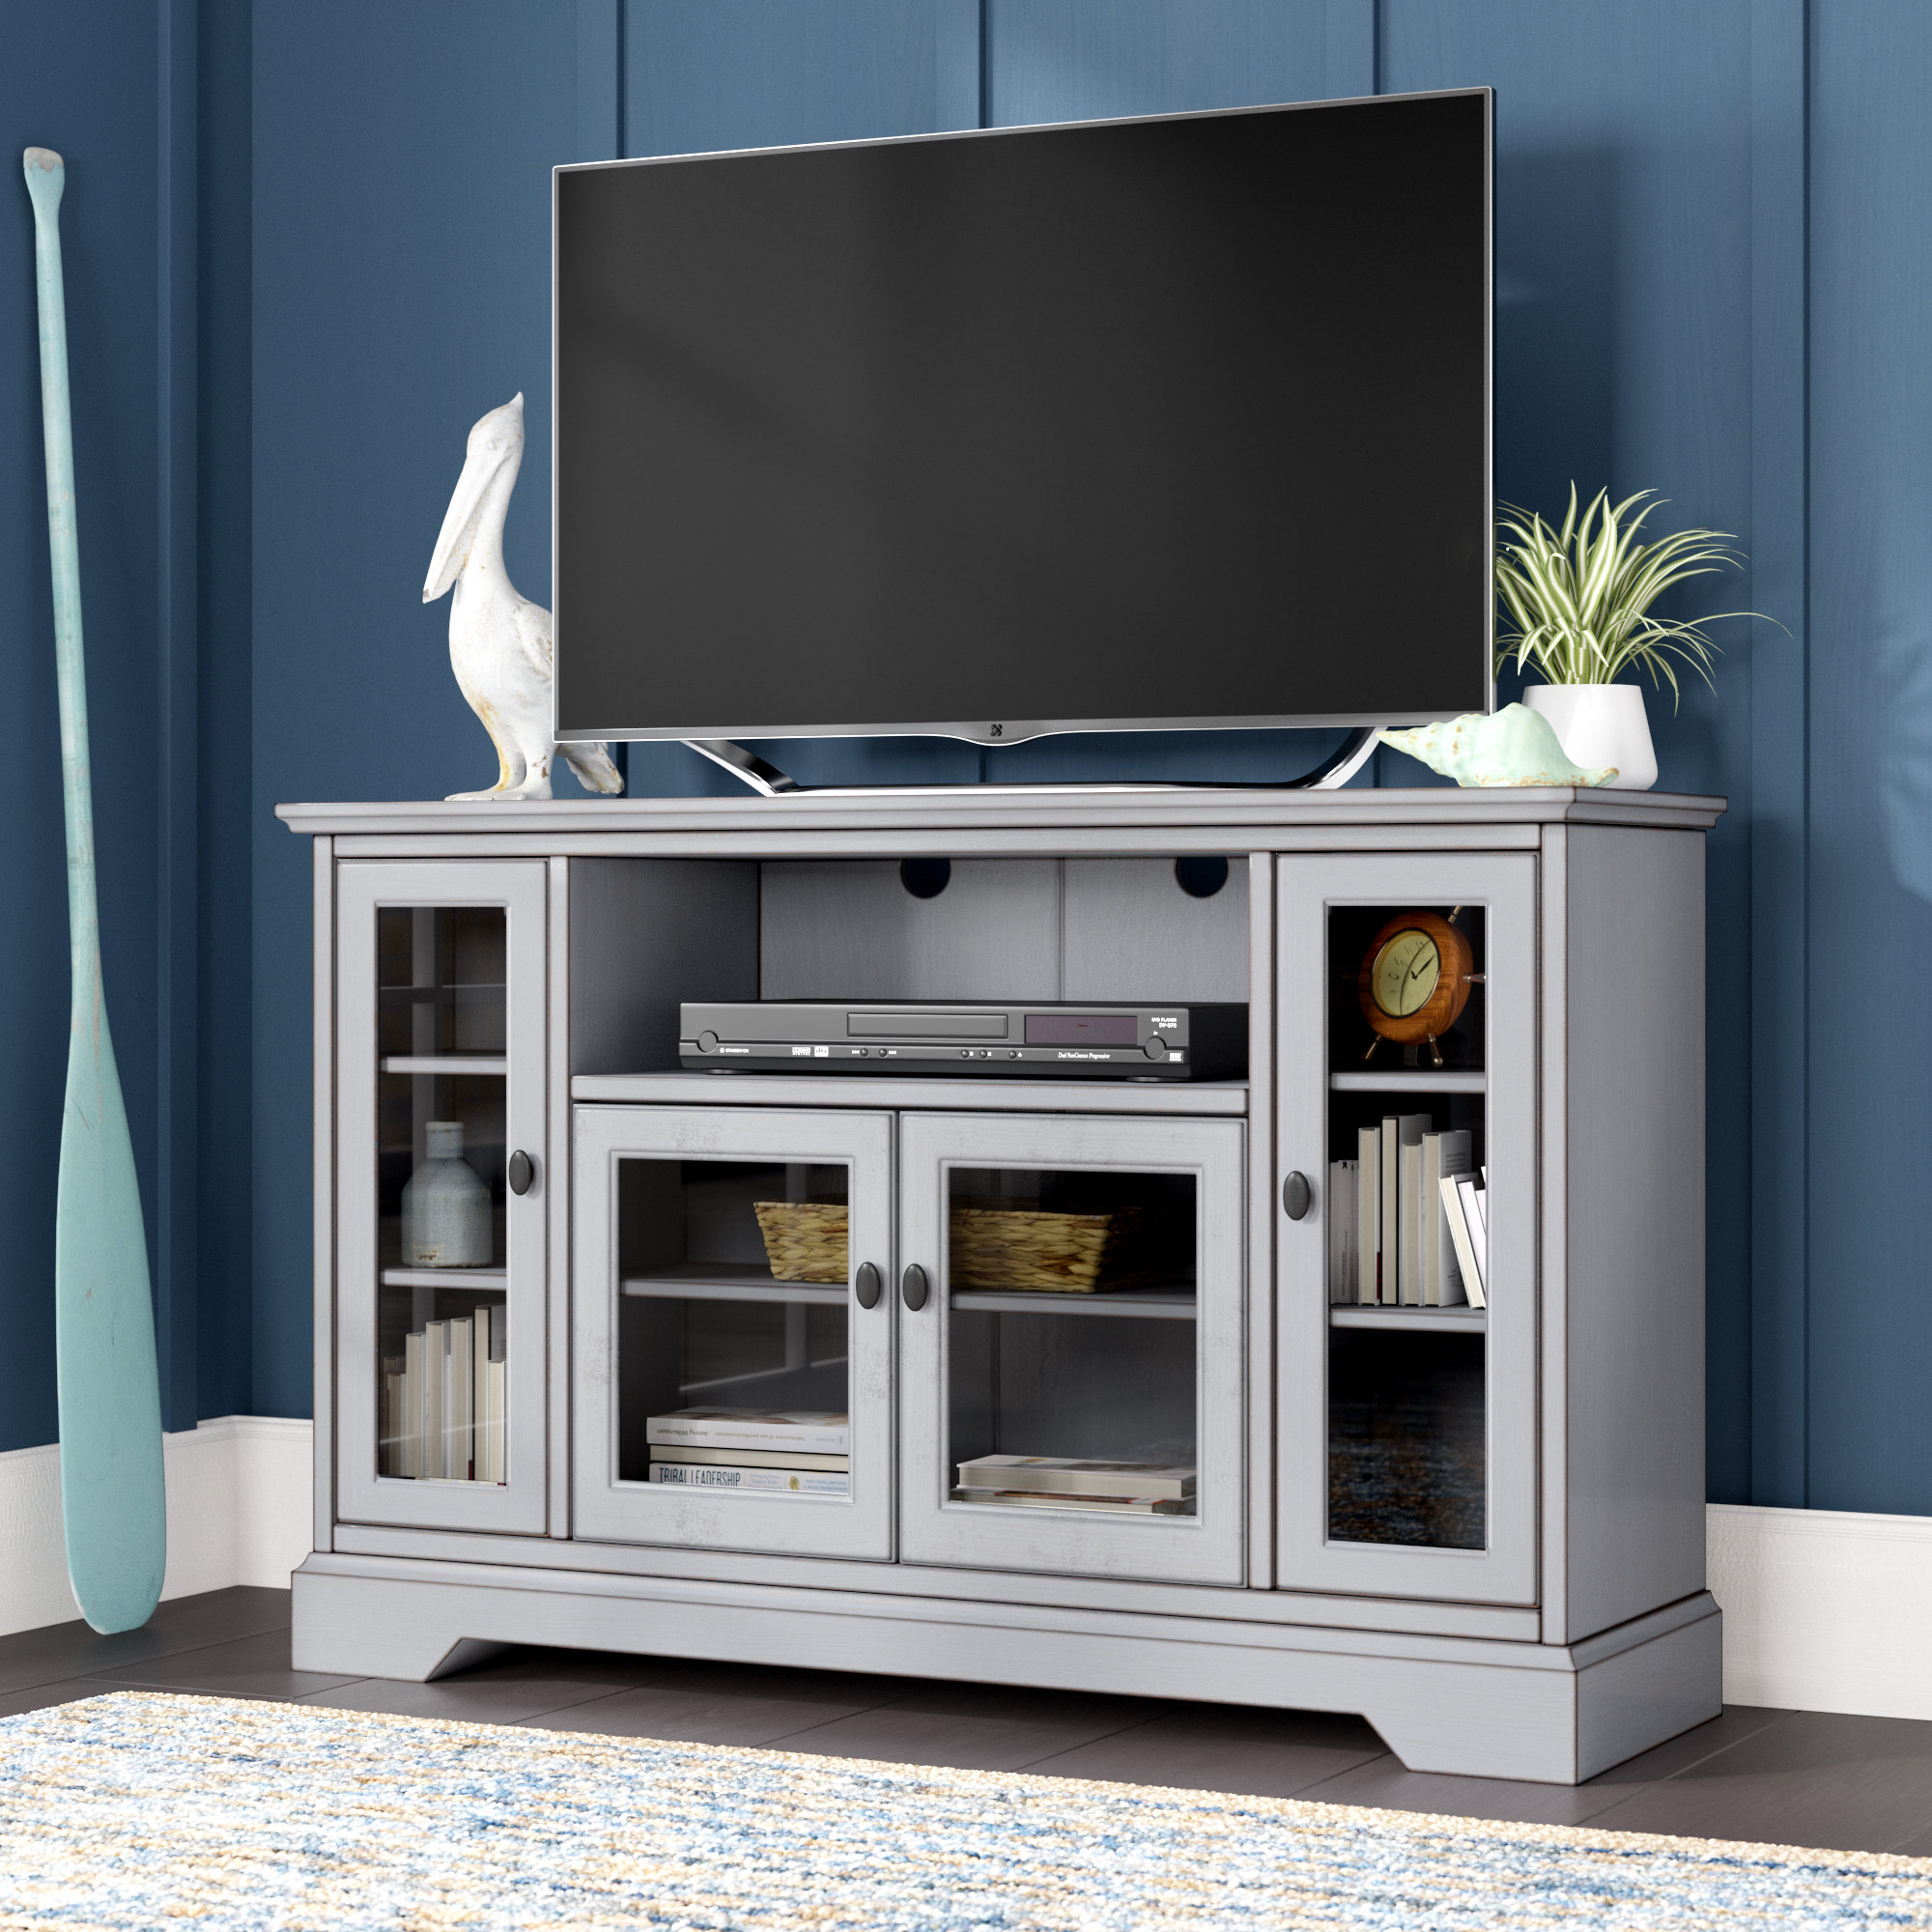 Tv Stands & Entertainment Centers You'll Love | Wayfair Throughout Sinclair White 74 Inch Tv Stands (View 21 of 30)